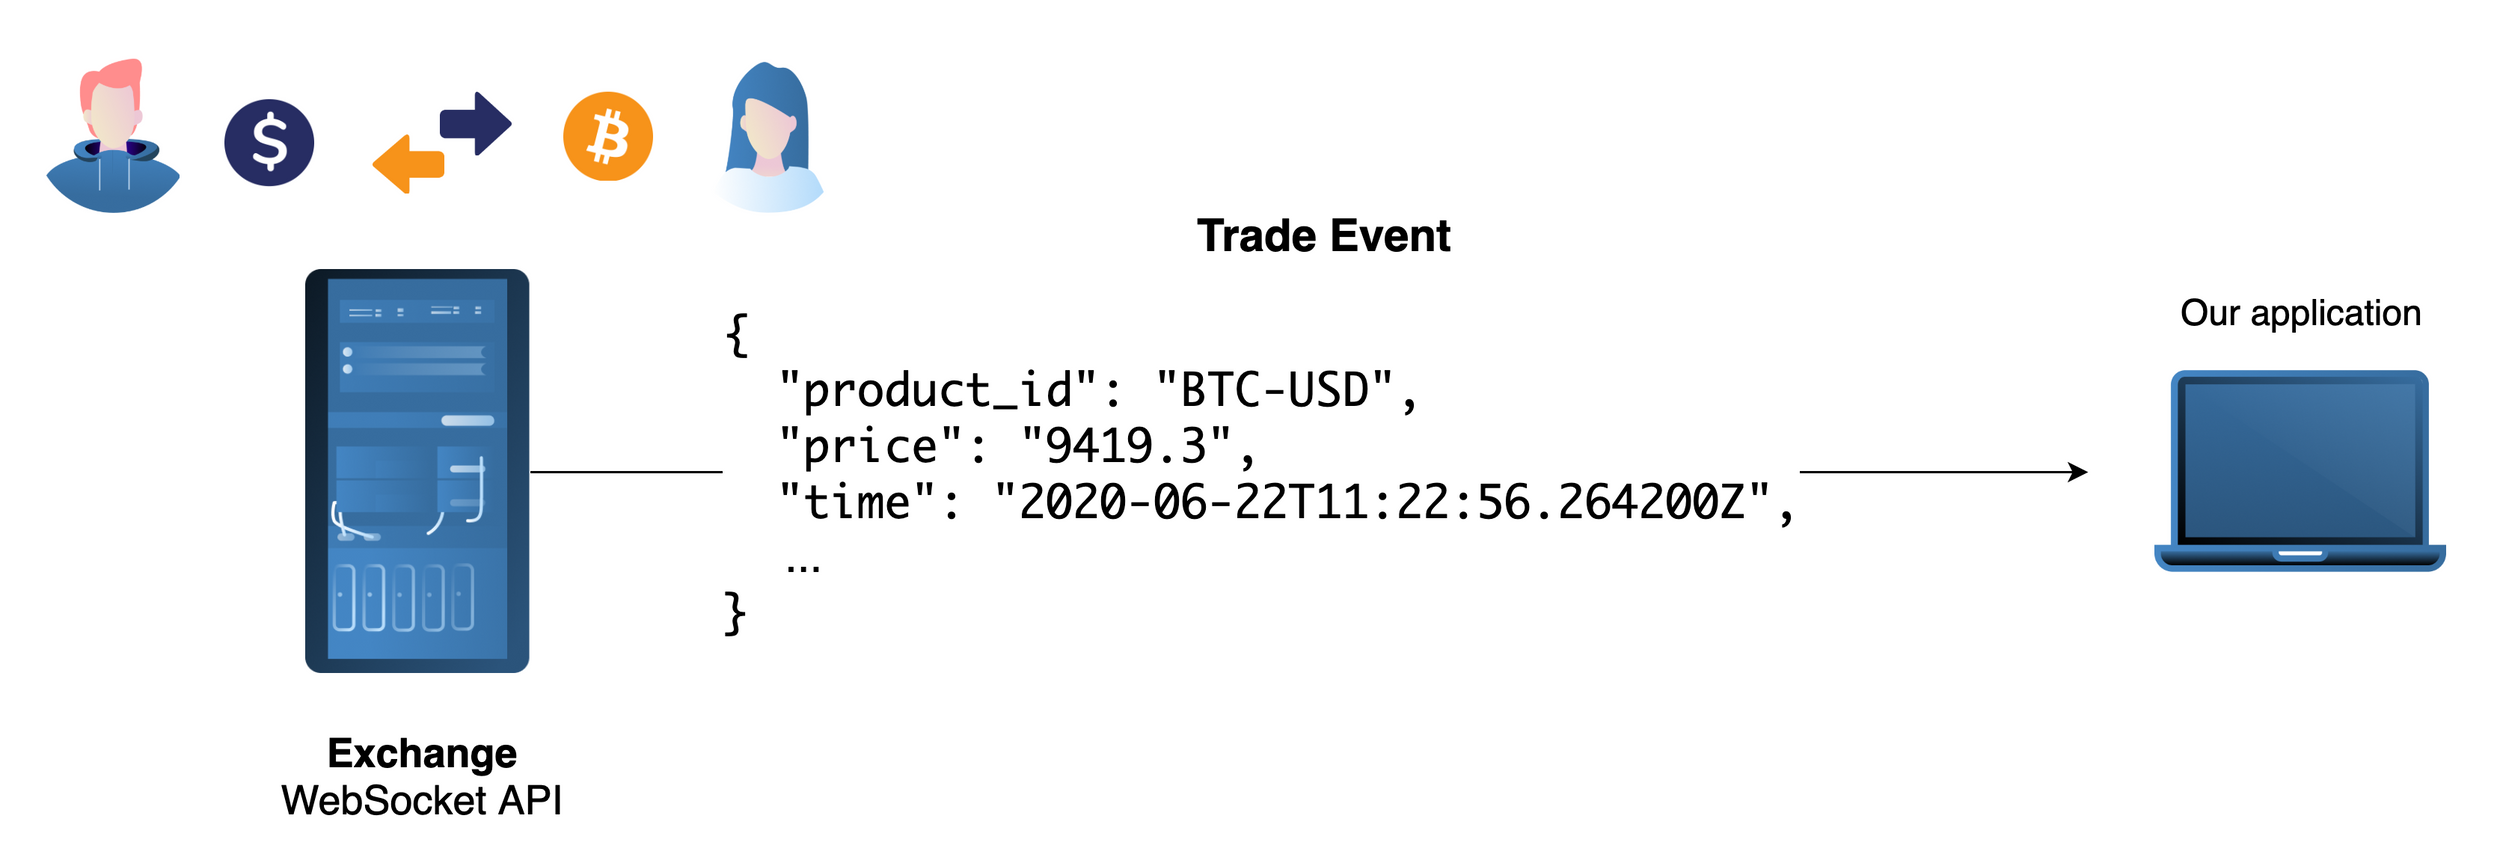 exchange_api_trade_event.png